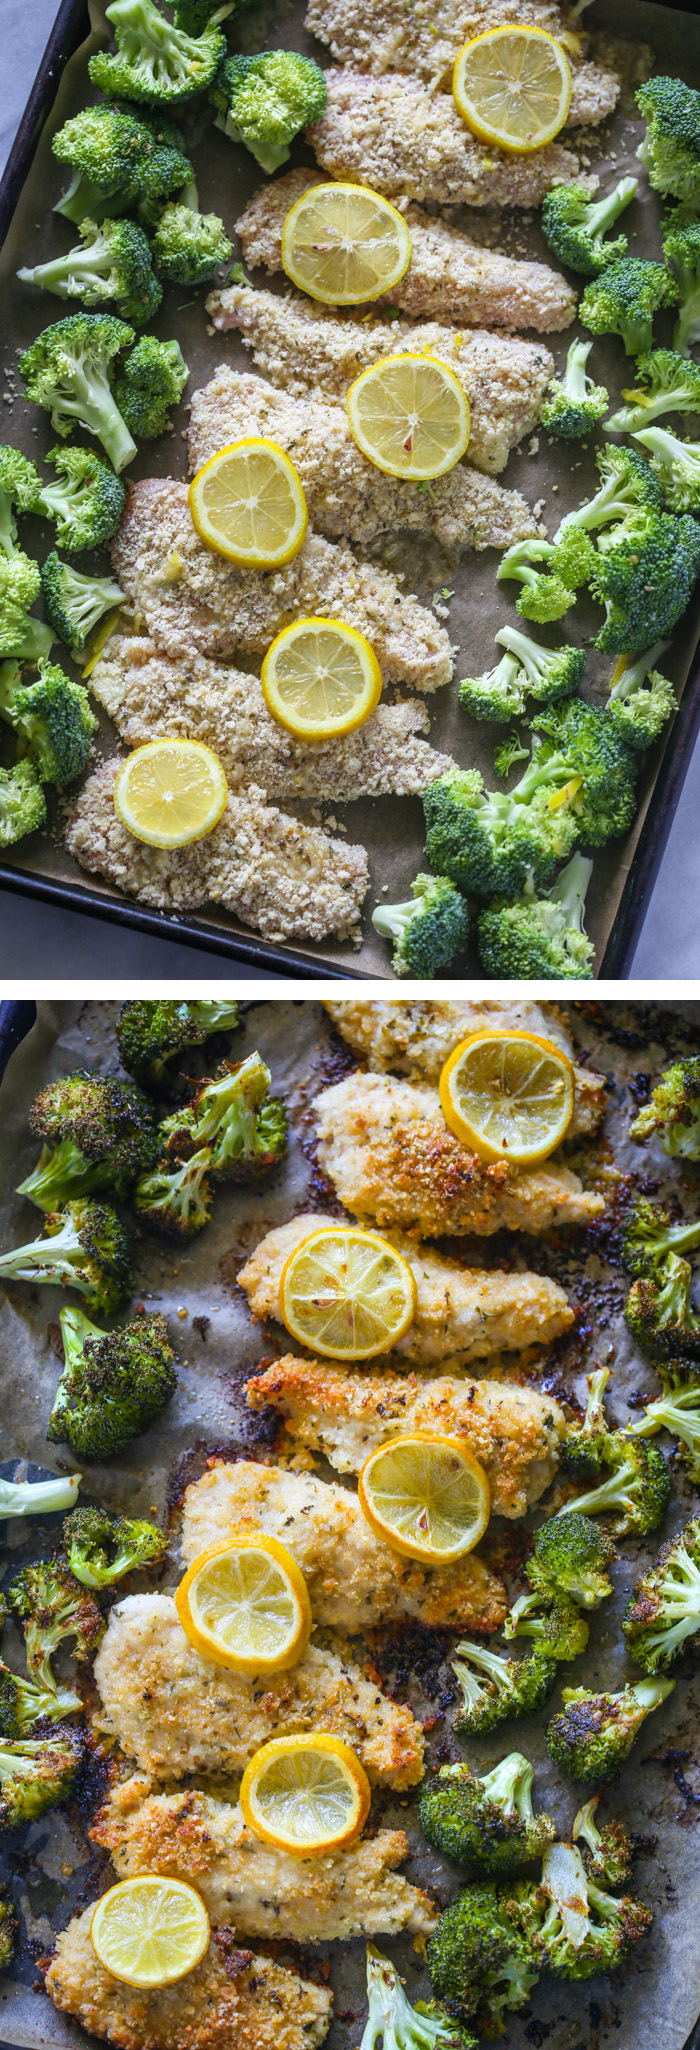 20 Minute One Pan Lemon Parmesan Chicken and Broccoli